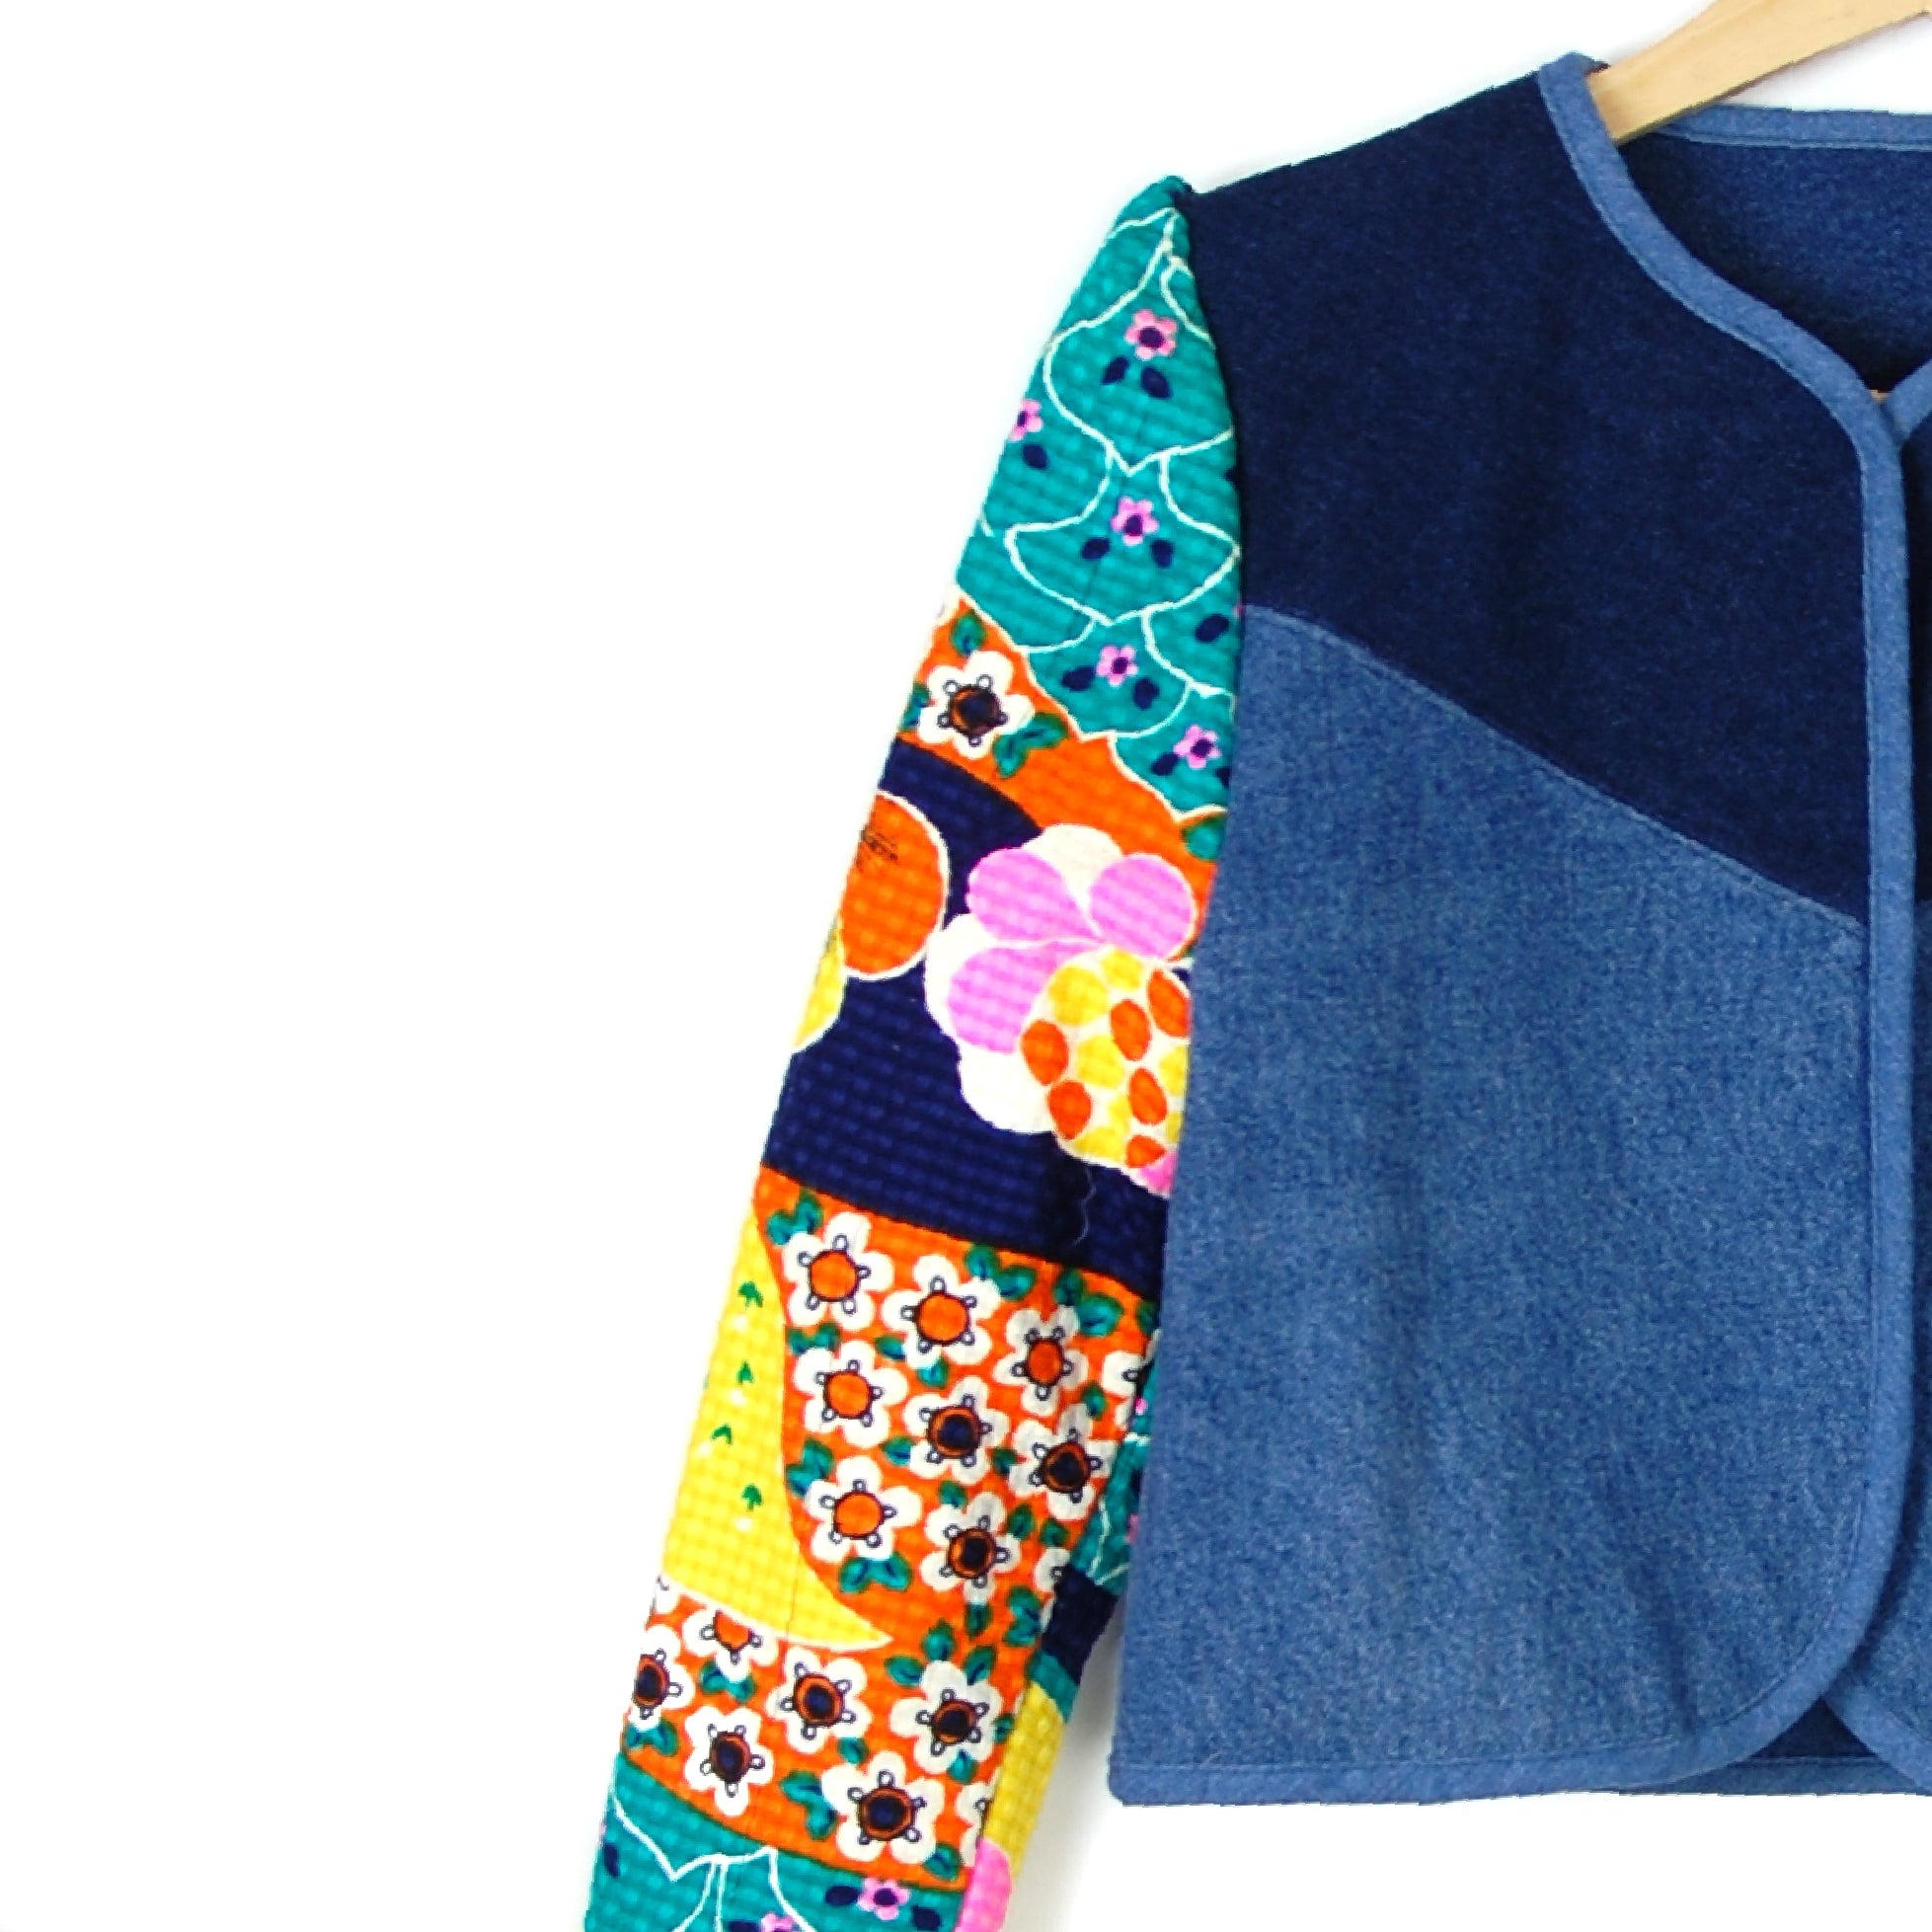 MAGIC CARPET QUILTED JACKET - Late to the Party